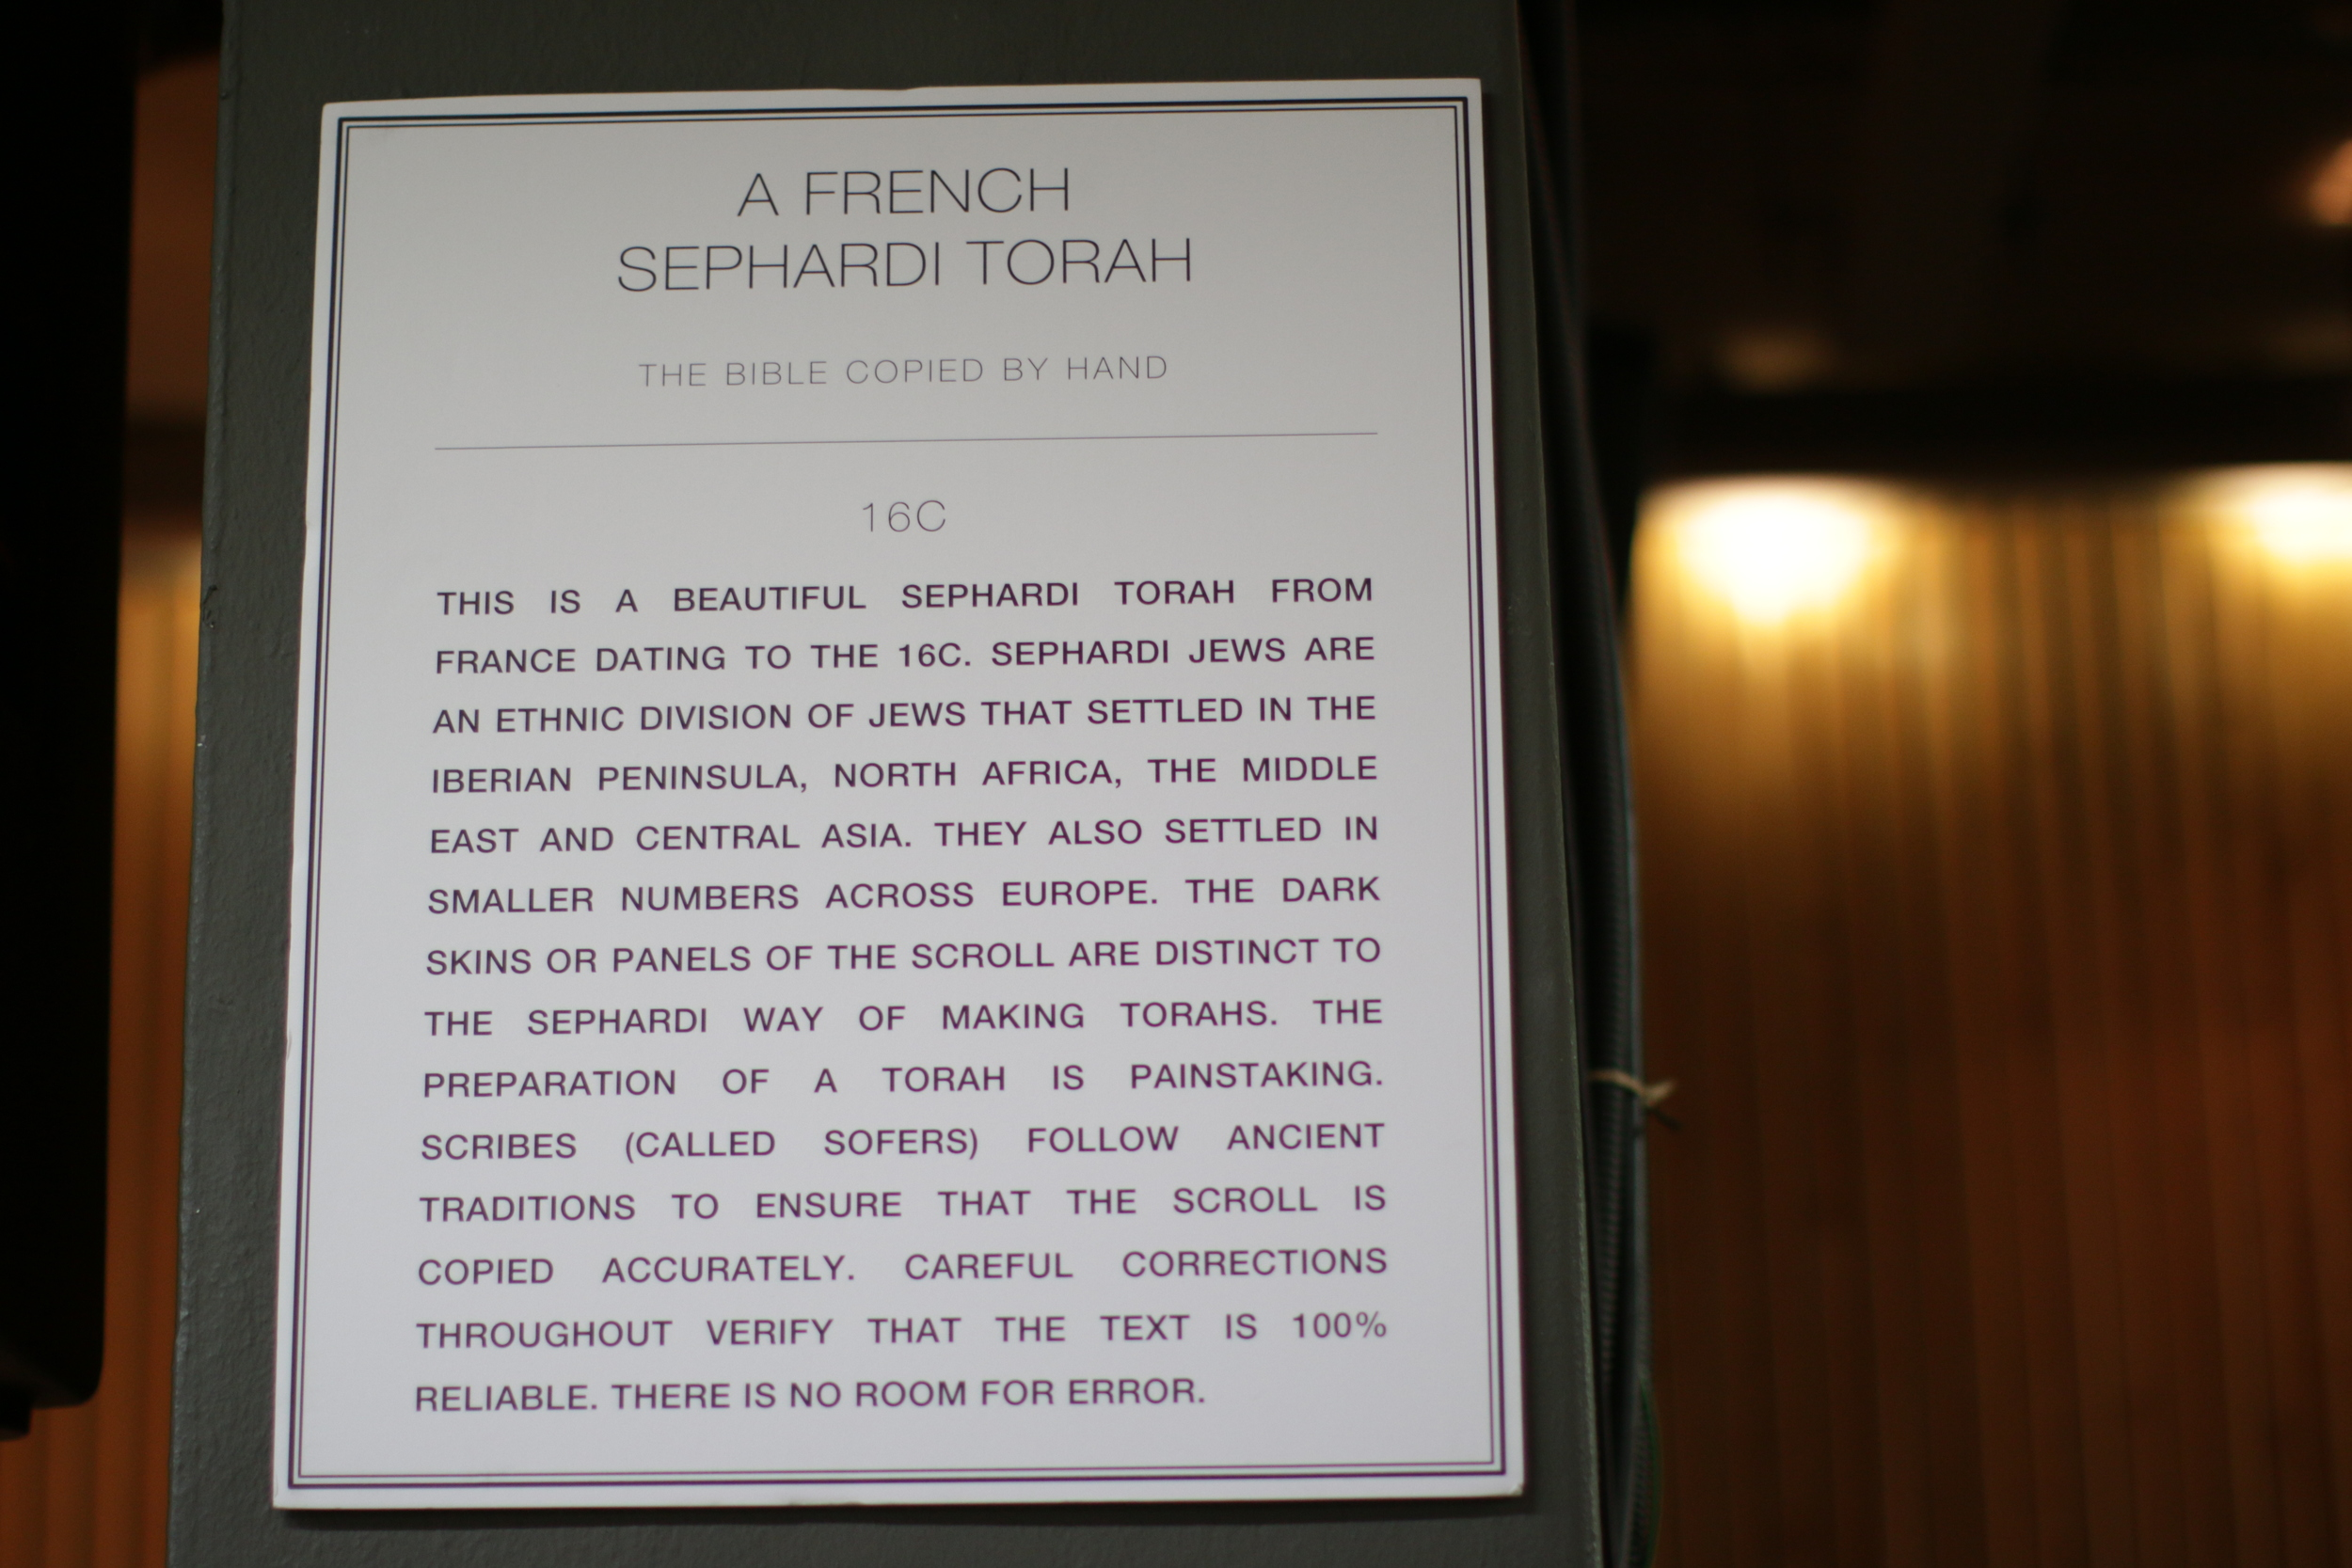 The rich history behind the French Sephardi Torah